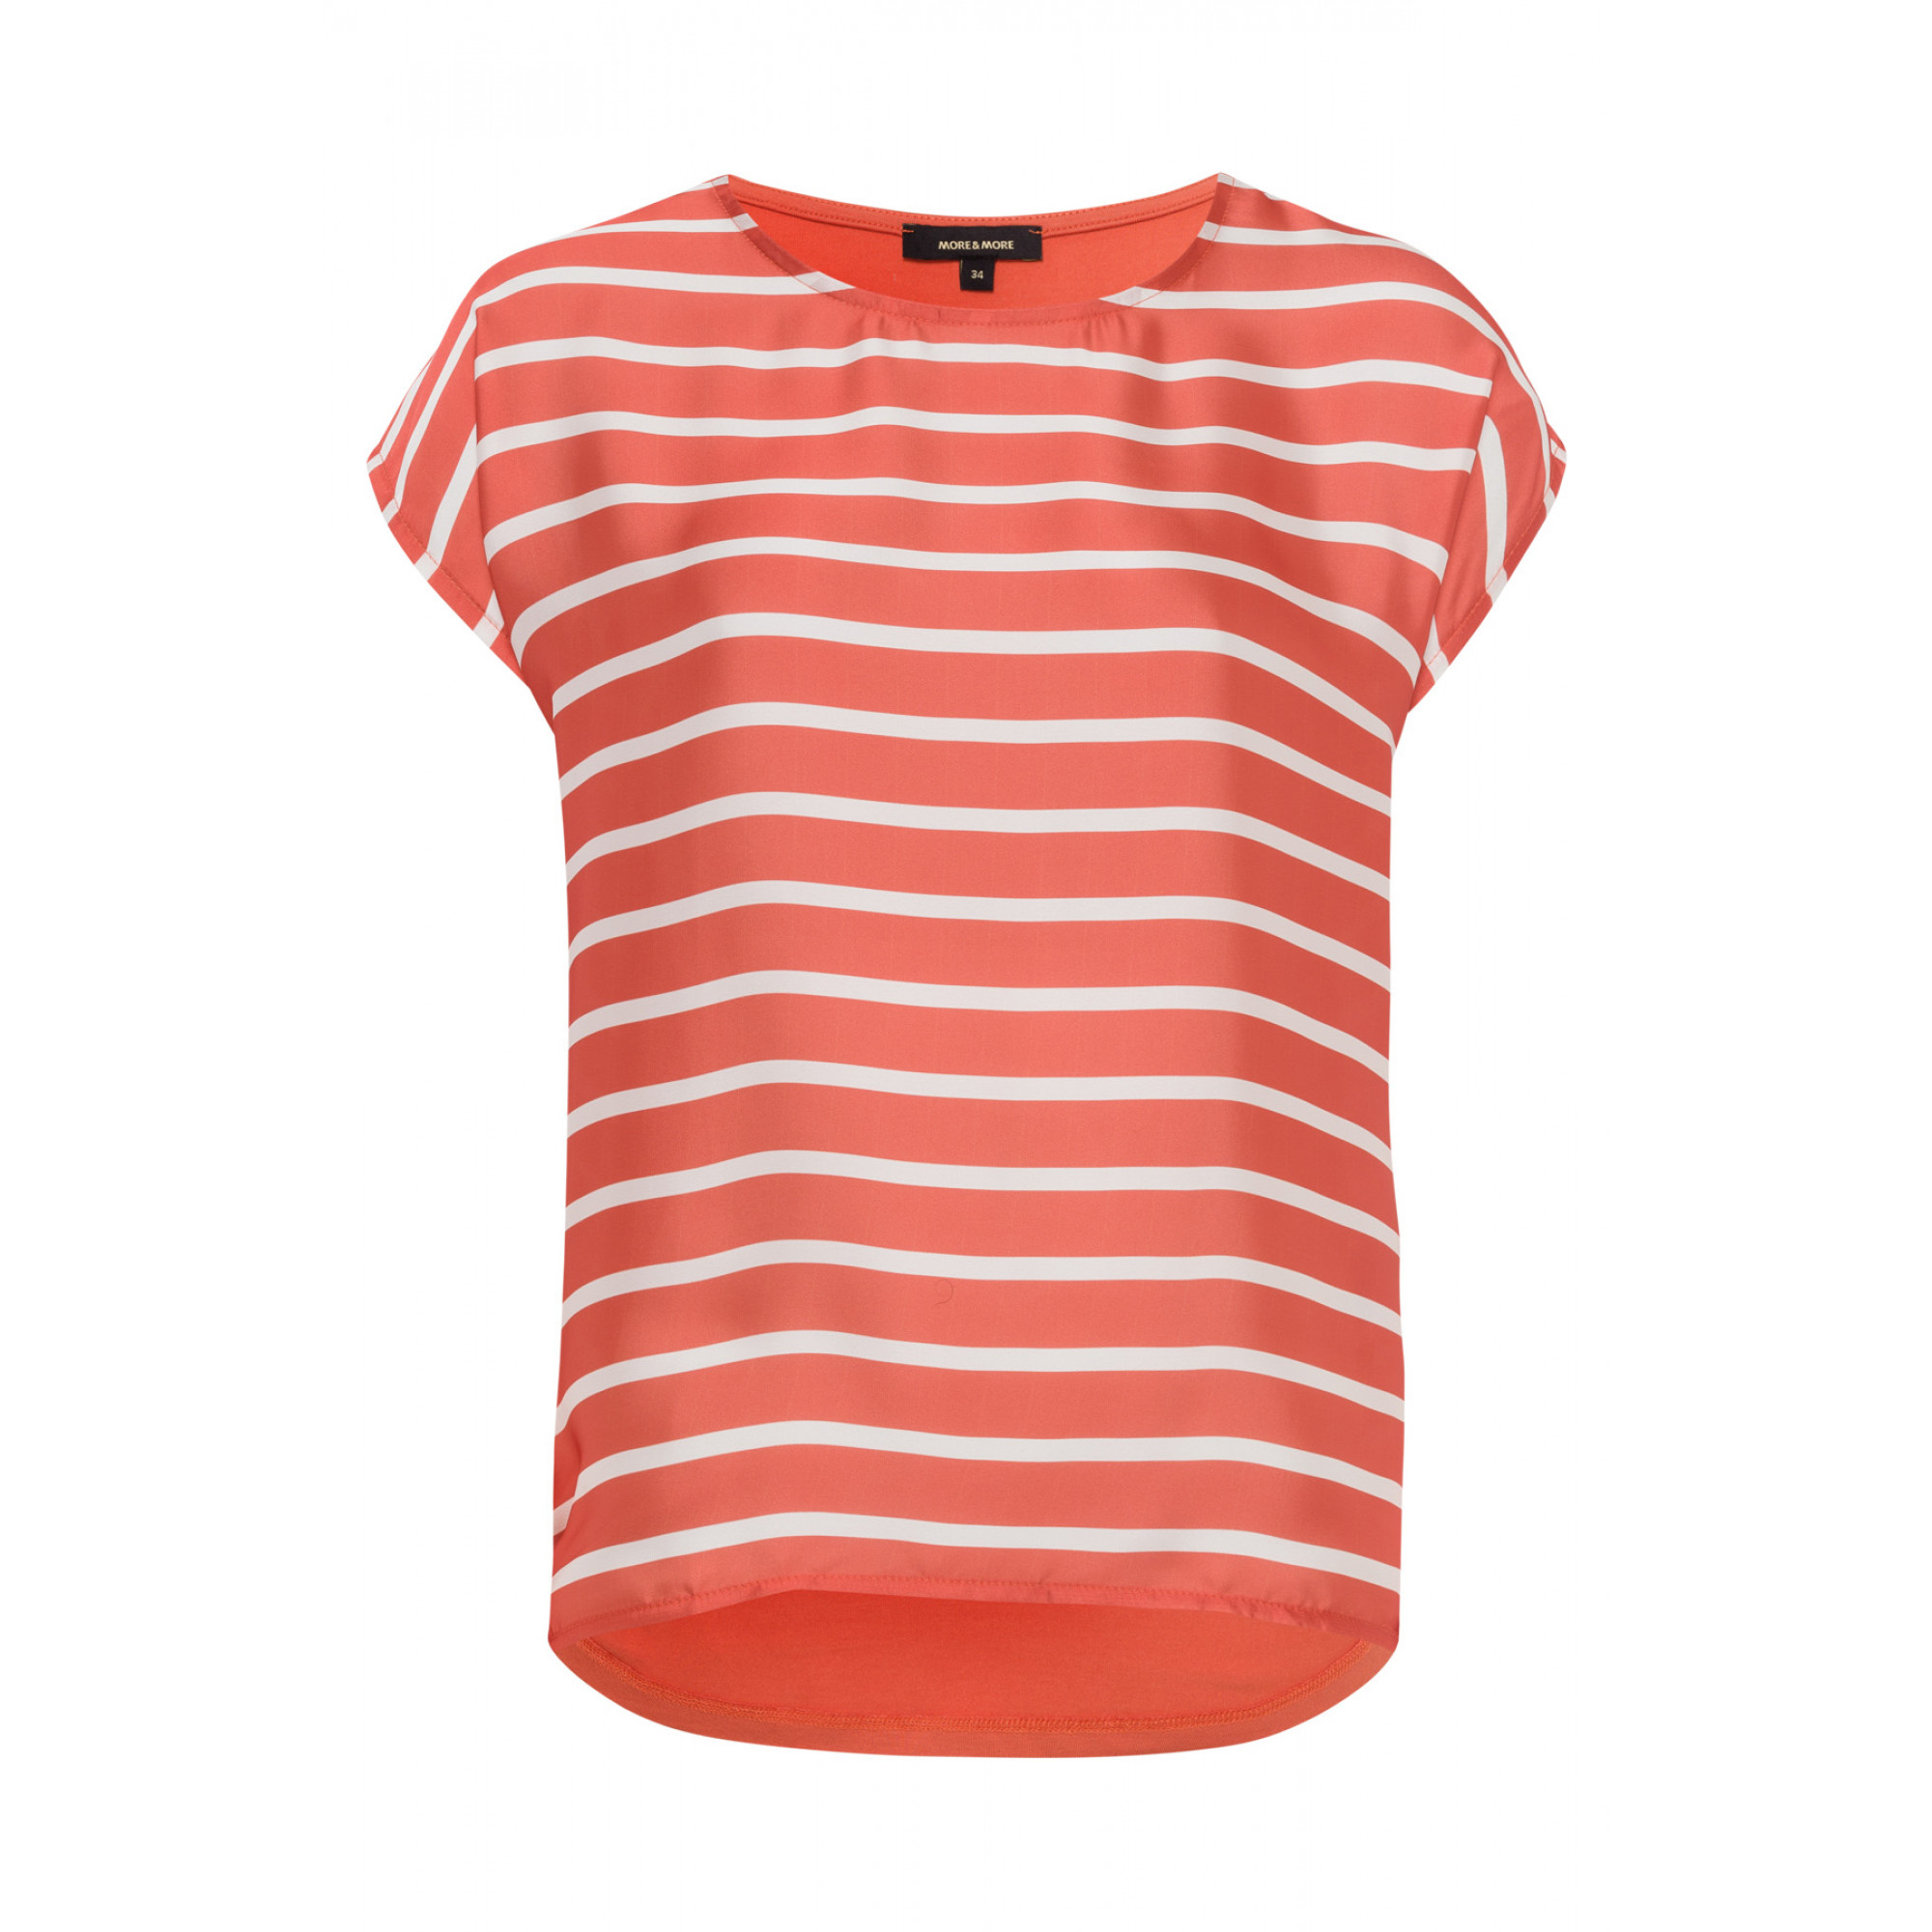 Shirt mit Satinfront, orange/weiß 91950020-2436 1